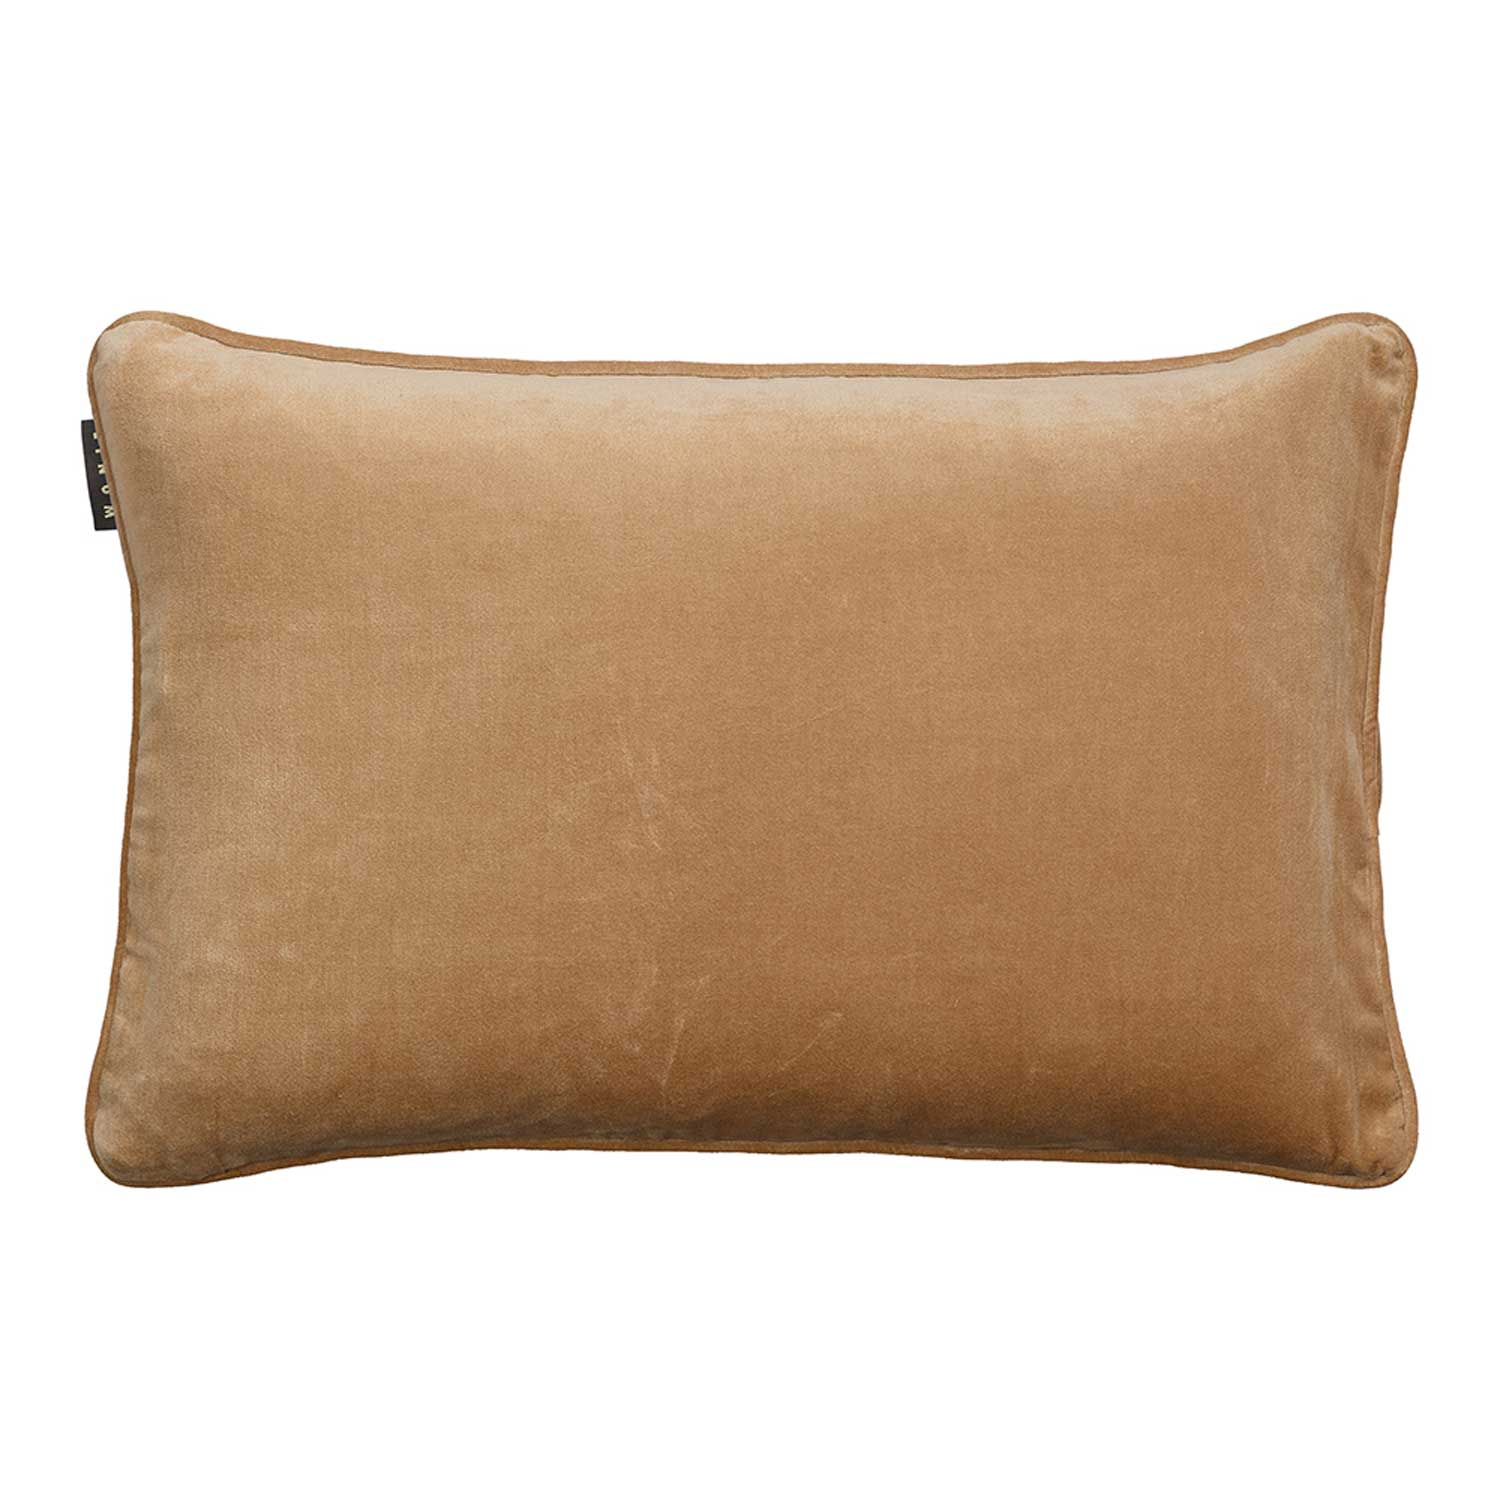 Paolo Cushion Cover 40x60 cm, Camel Brown, Linum